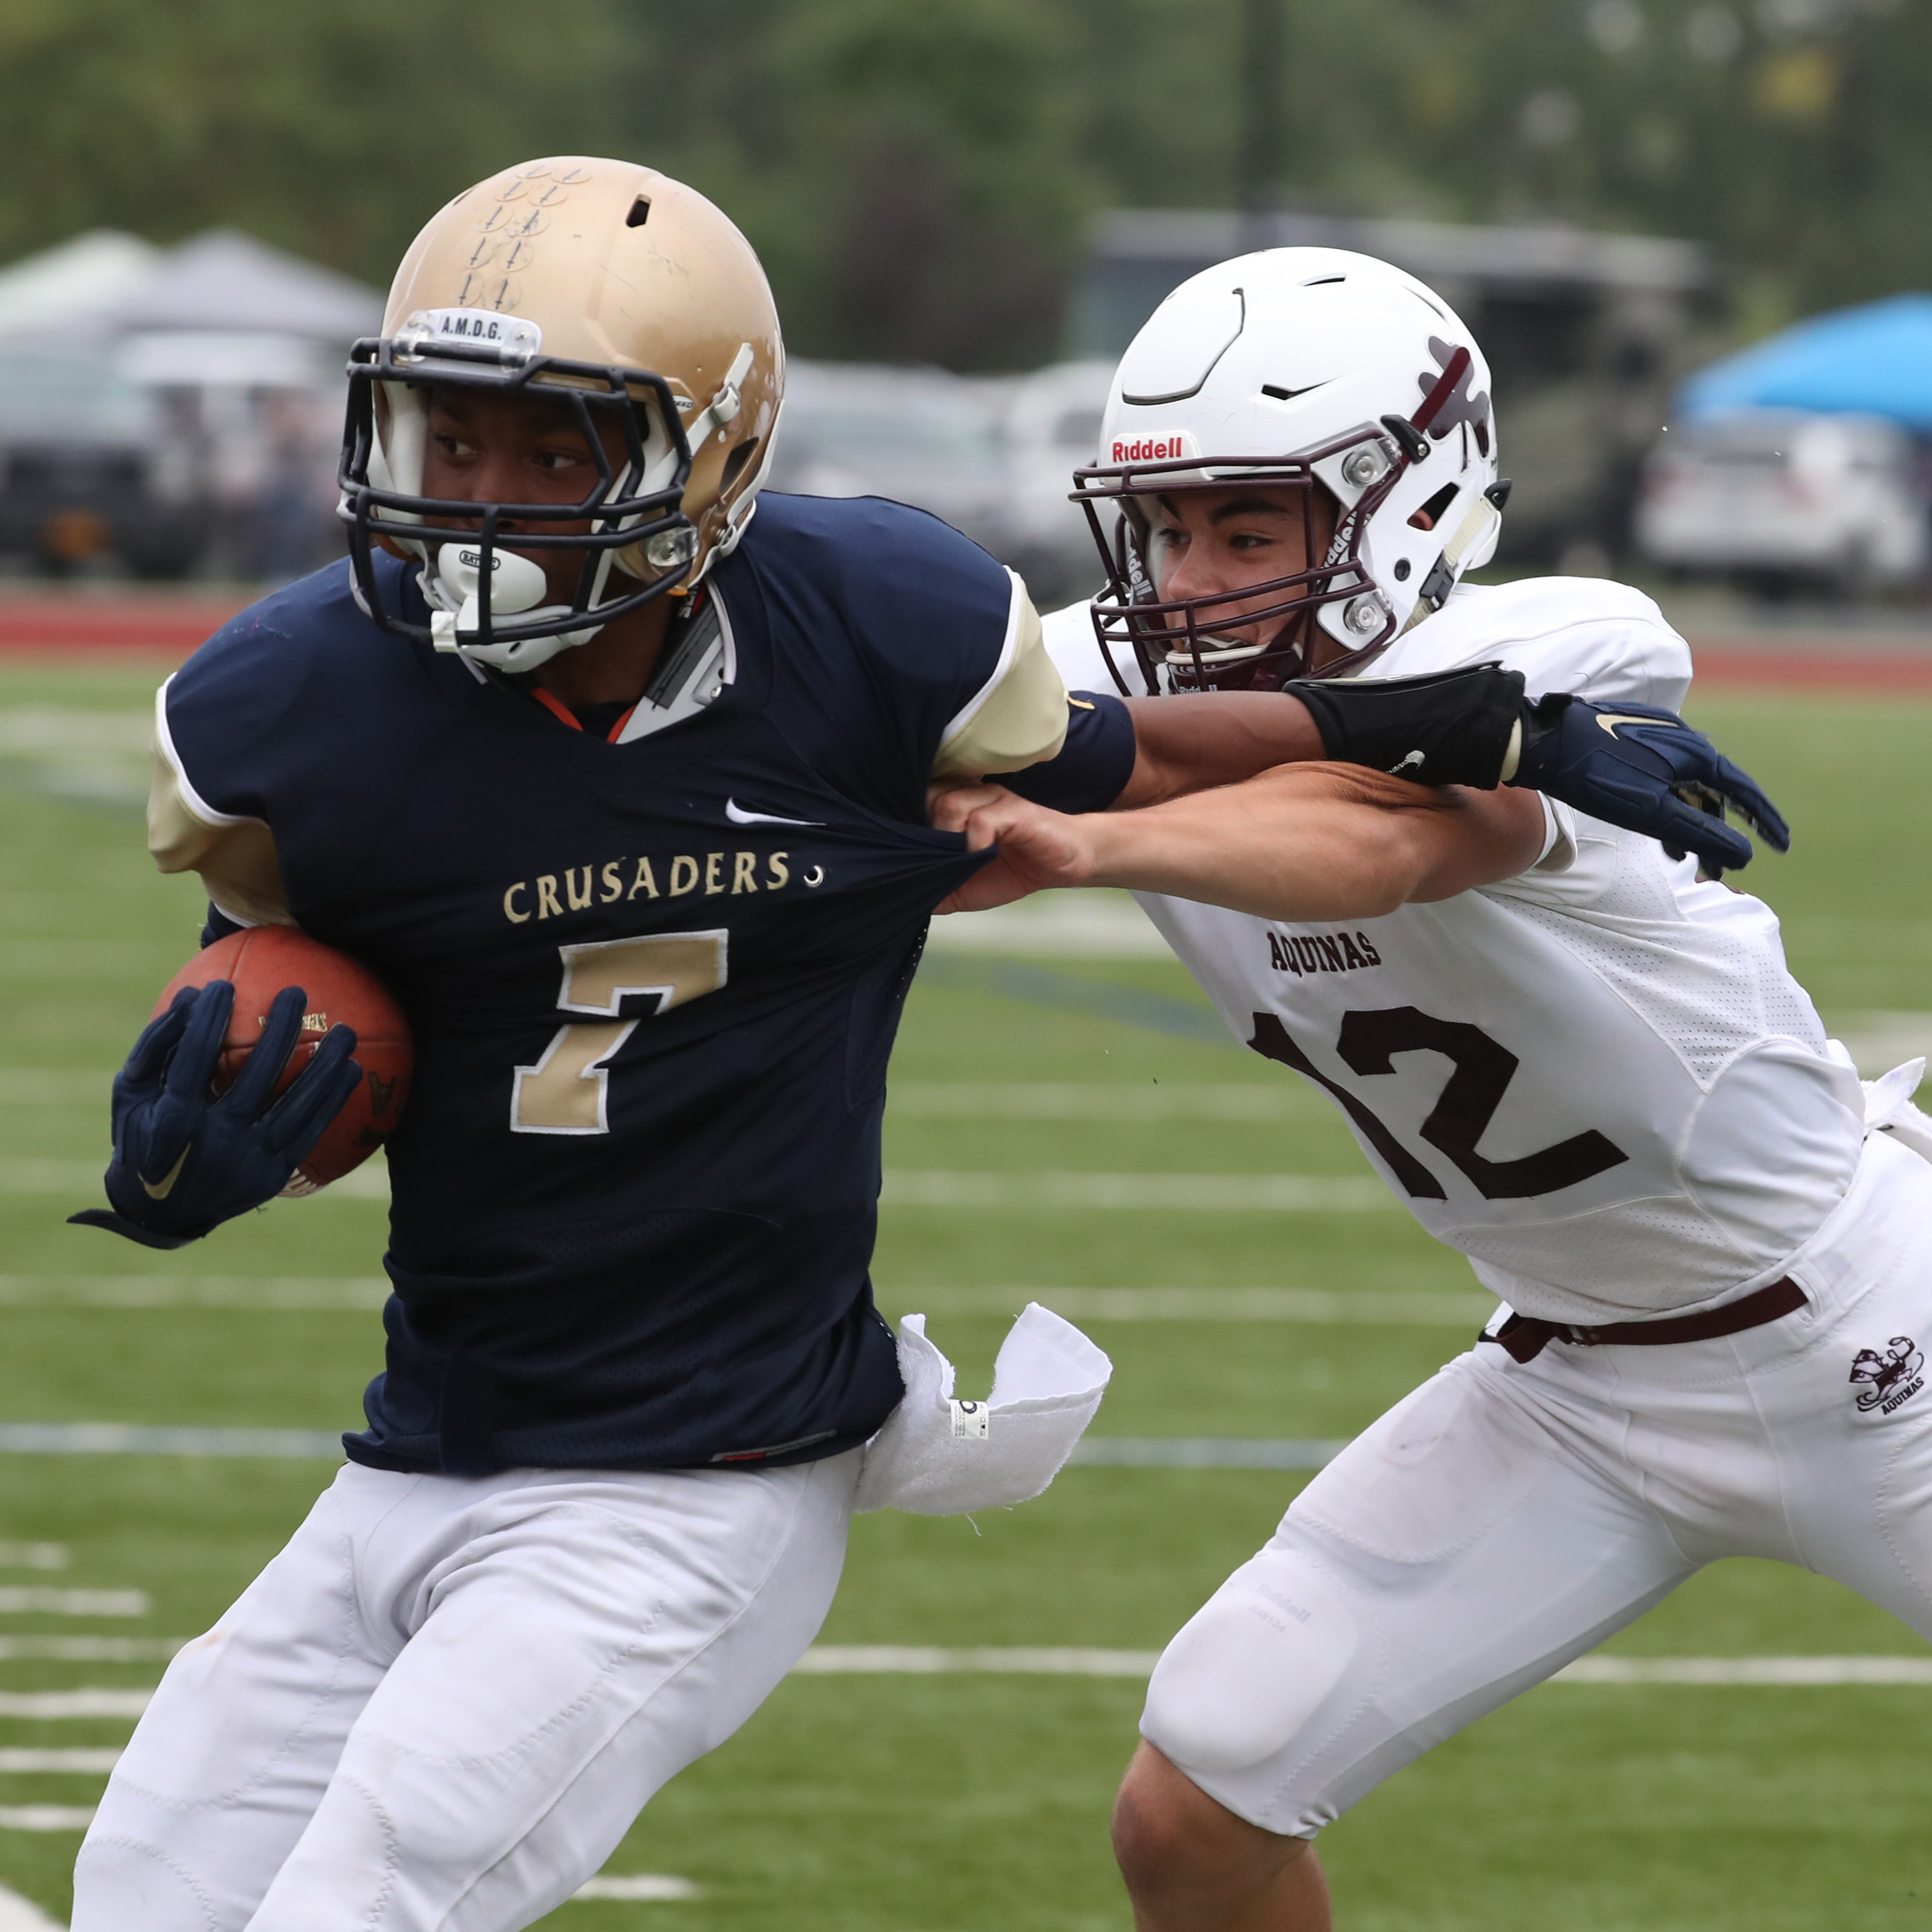 Keenan Ollison, pictured making an interception against Aquinas, and Canisius' defensive backs are ready for the challenge posed by Cardinal Hayes' passing game. (James P. McCoy/ Buffalo News)